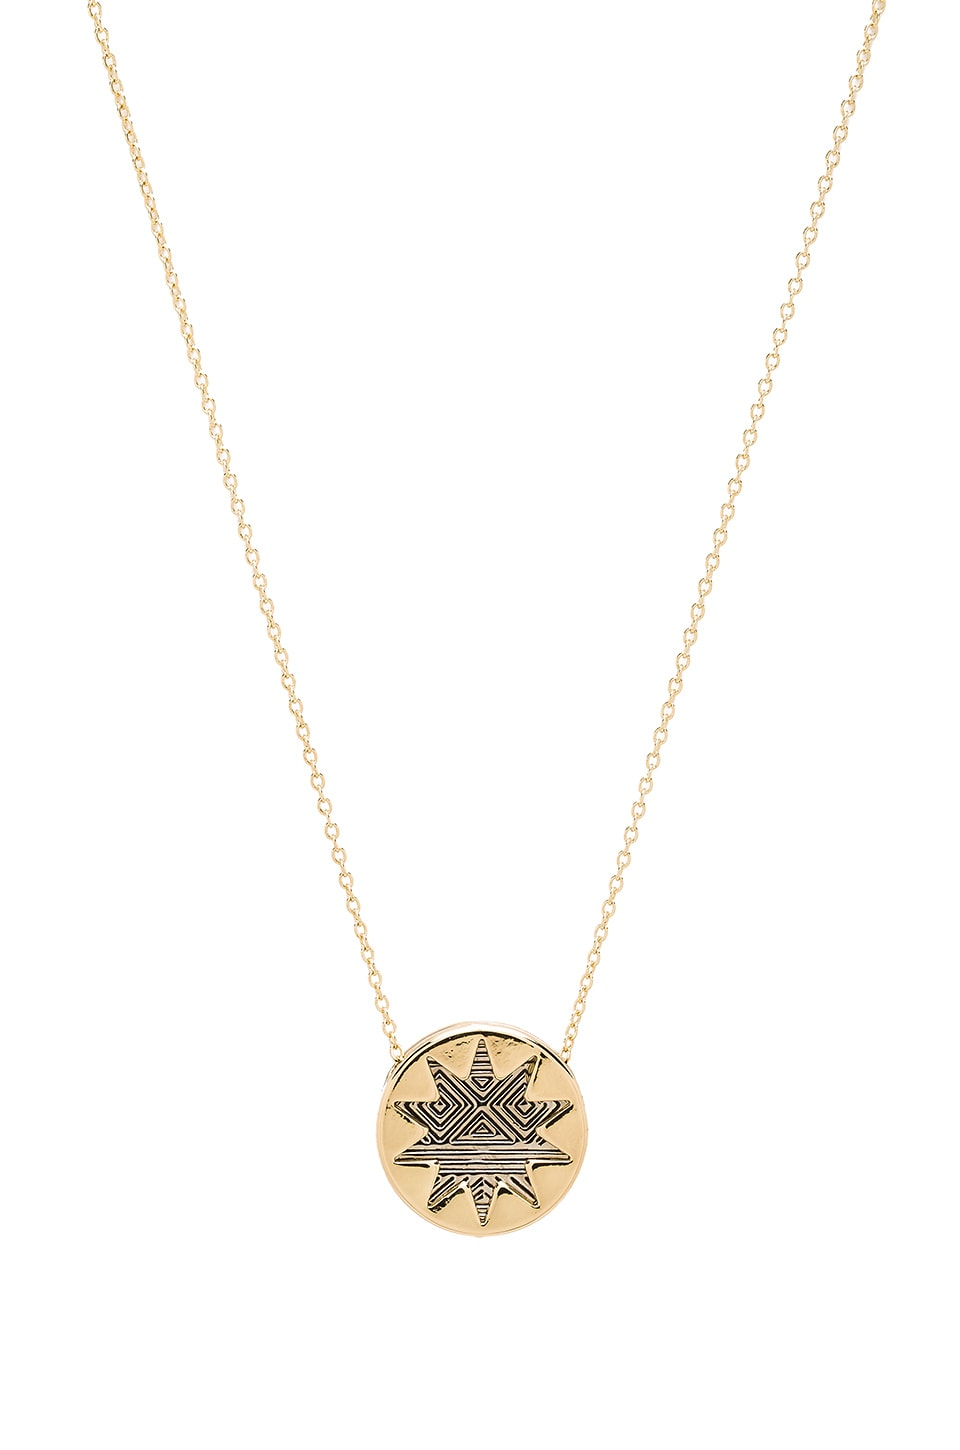 House of Harlow 1960 House of Harlow Engraved Mini Sunburst Necklace in Gold/Silver